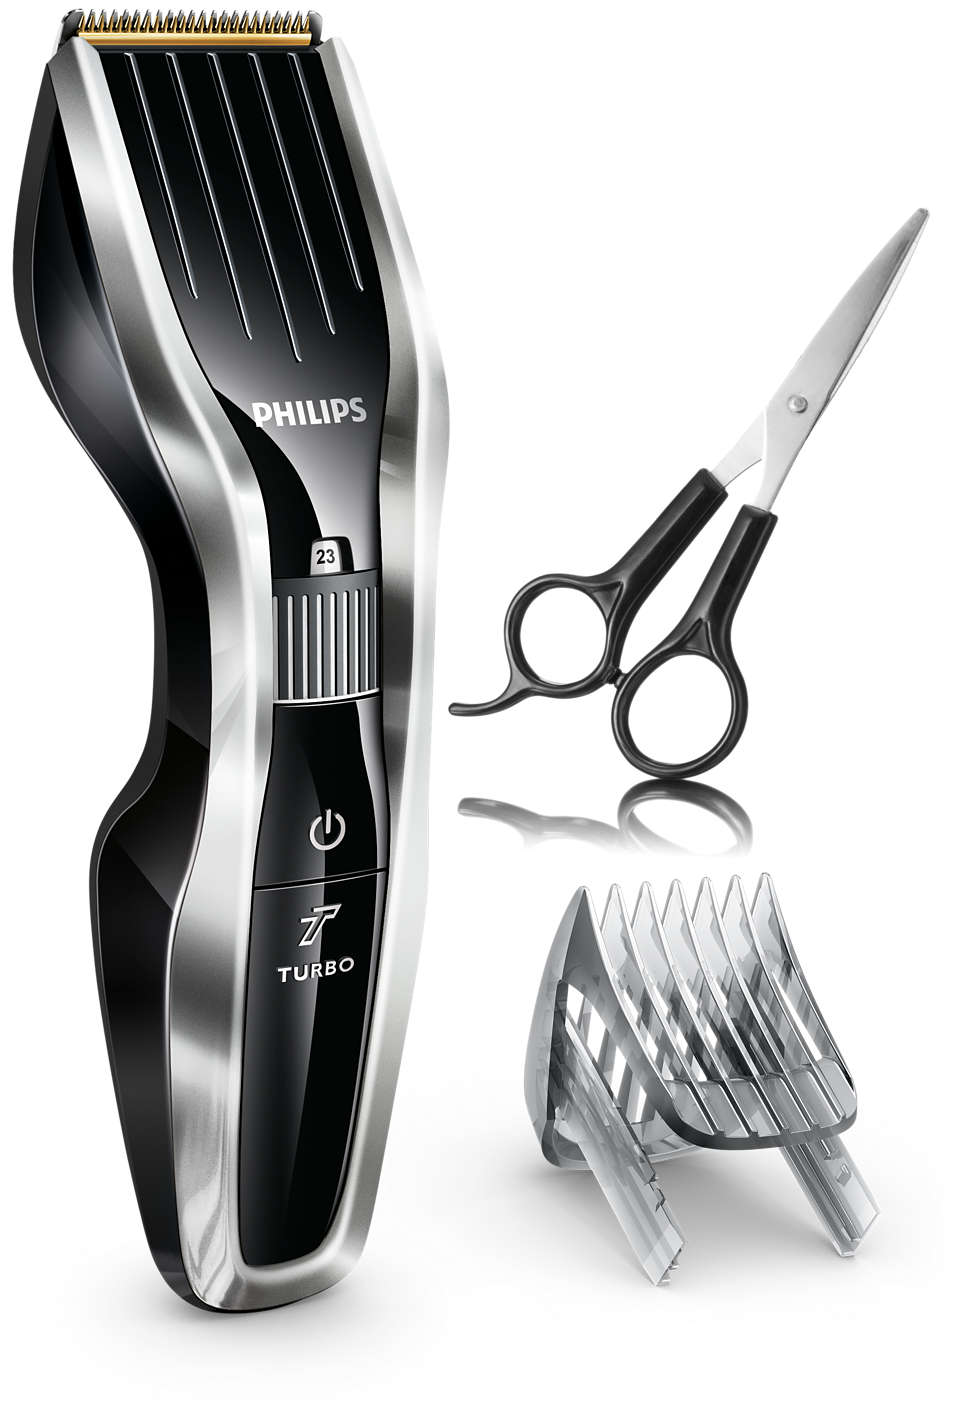 HAIRCLIPPER Series 7000 - Cuts twice as fast*